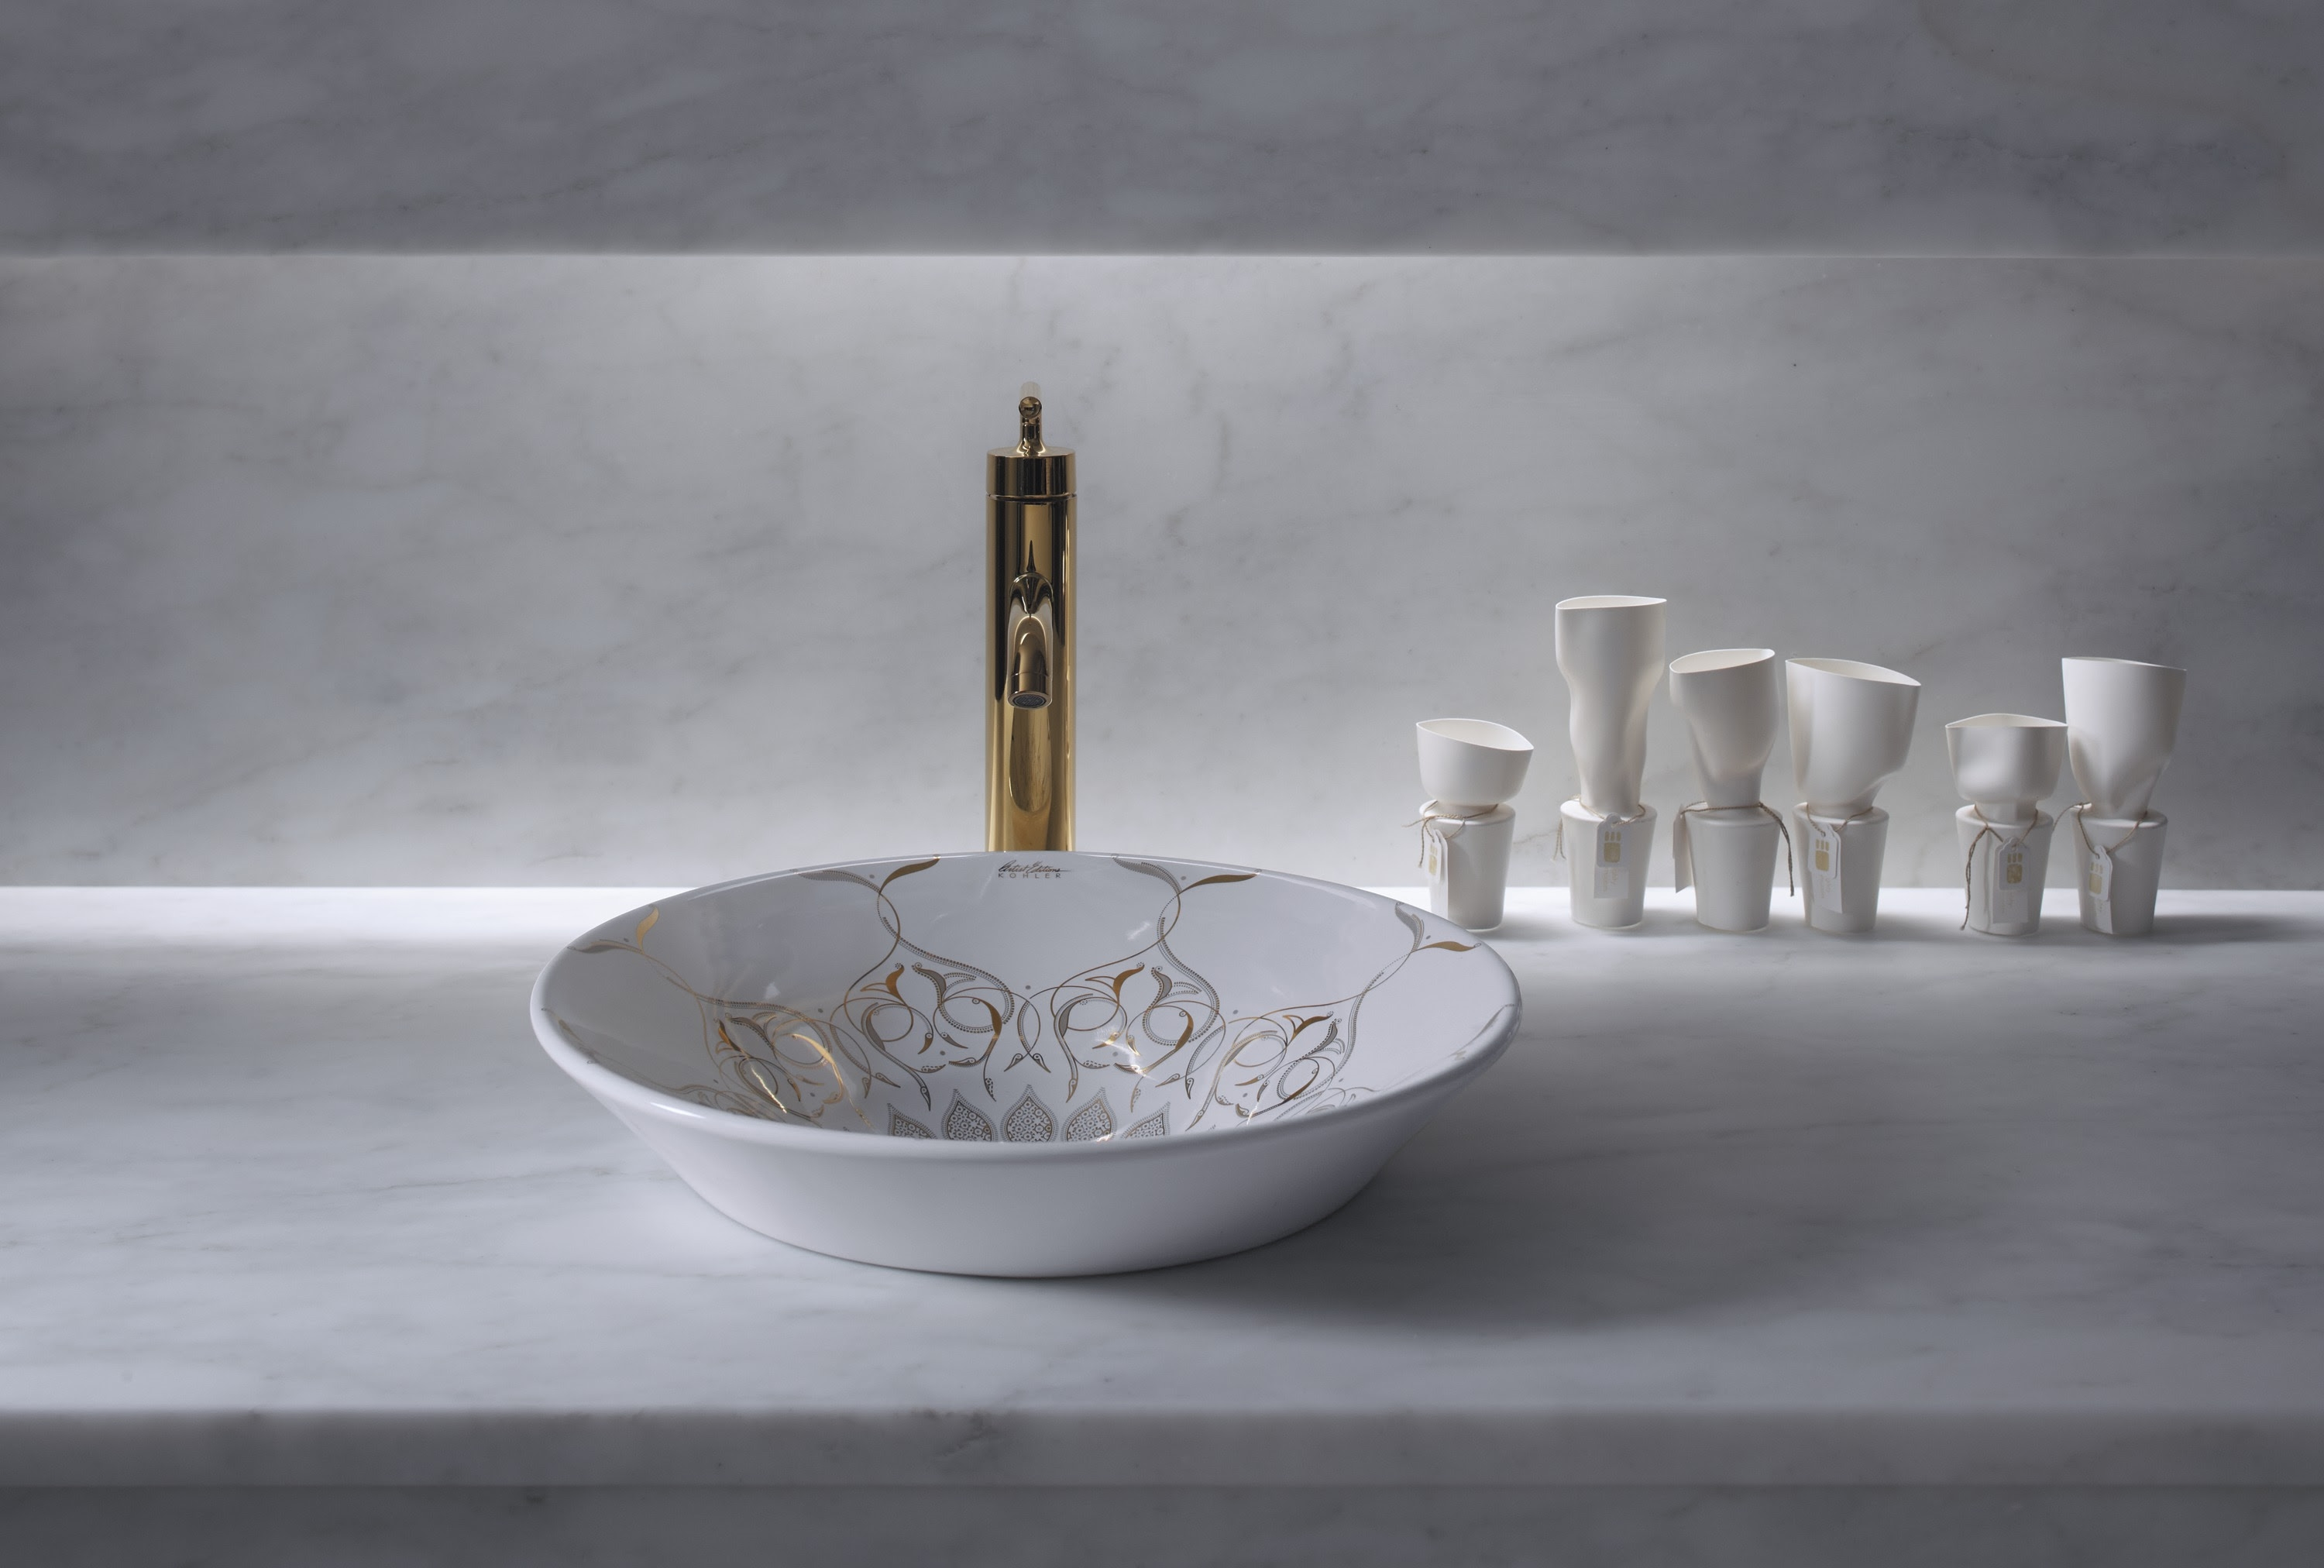 Washbasin inspired by Moorish style and decorative architecture